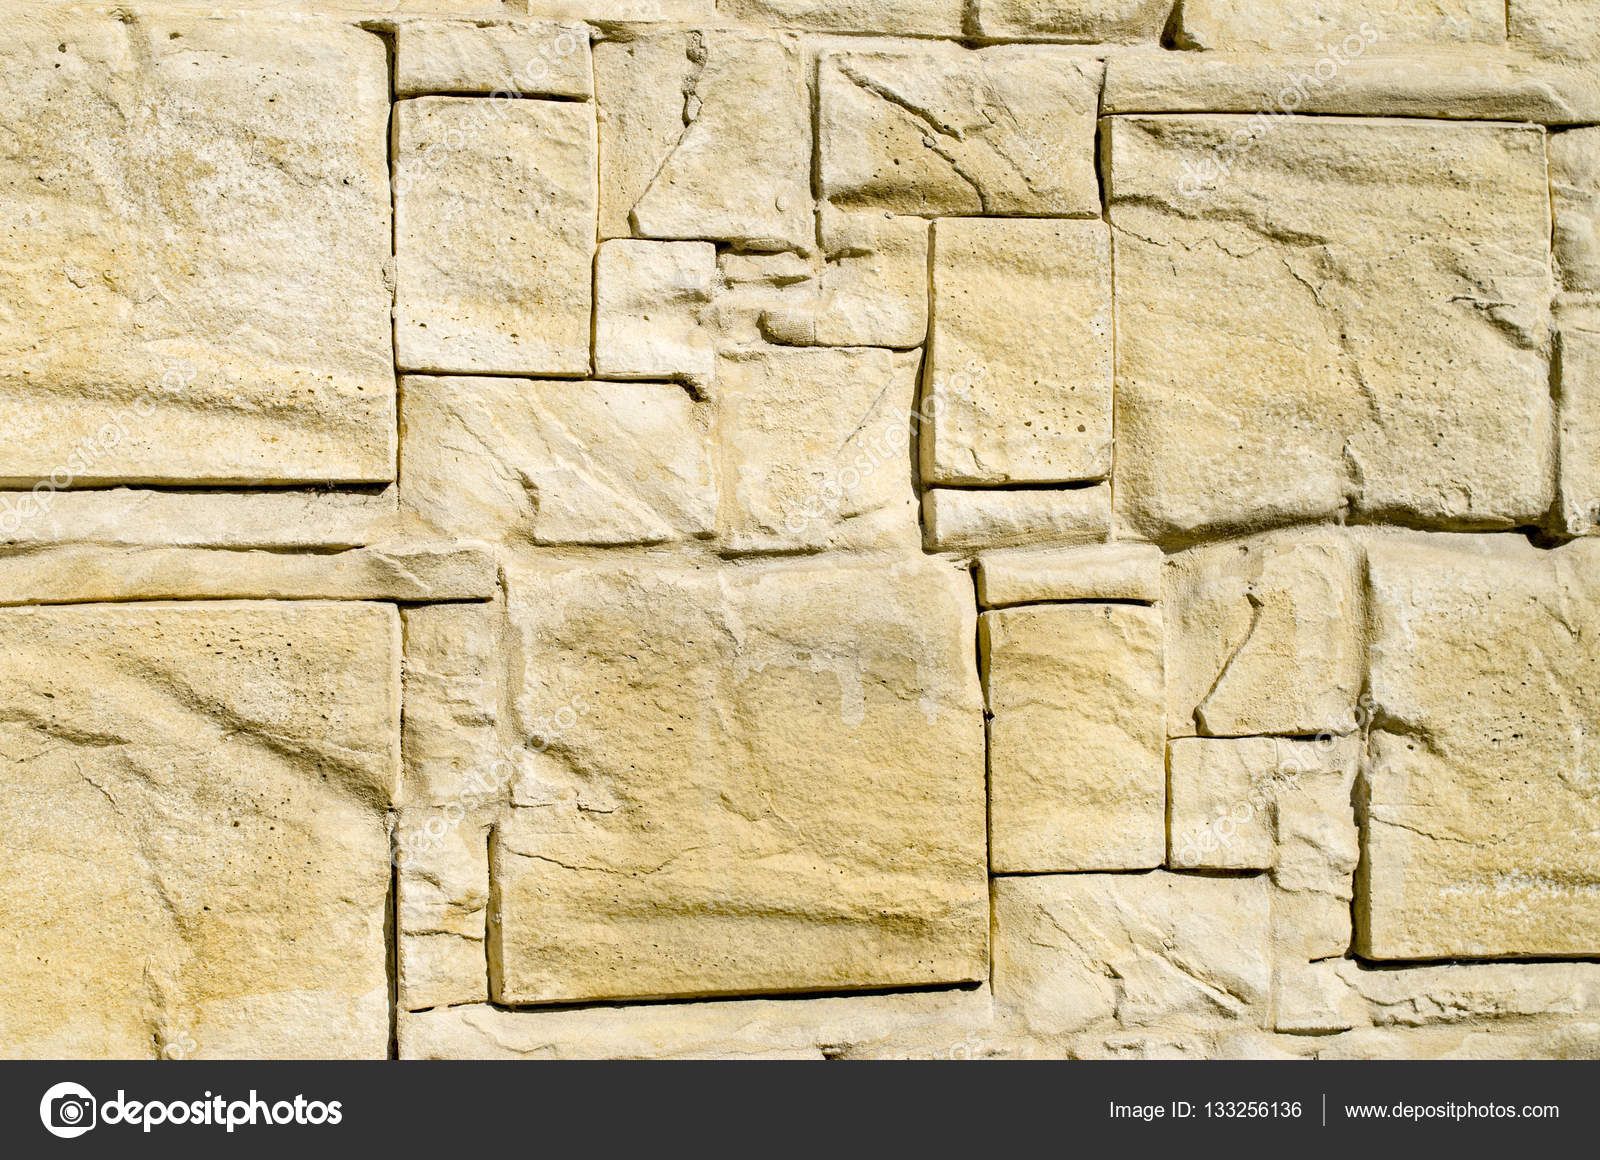 Decorative relief cladding slabs imitating stones on wall — Stock ...